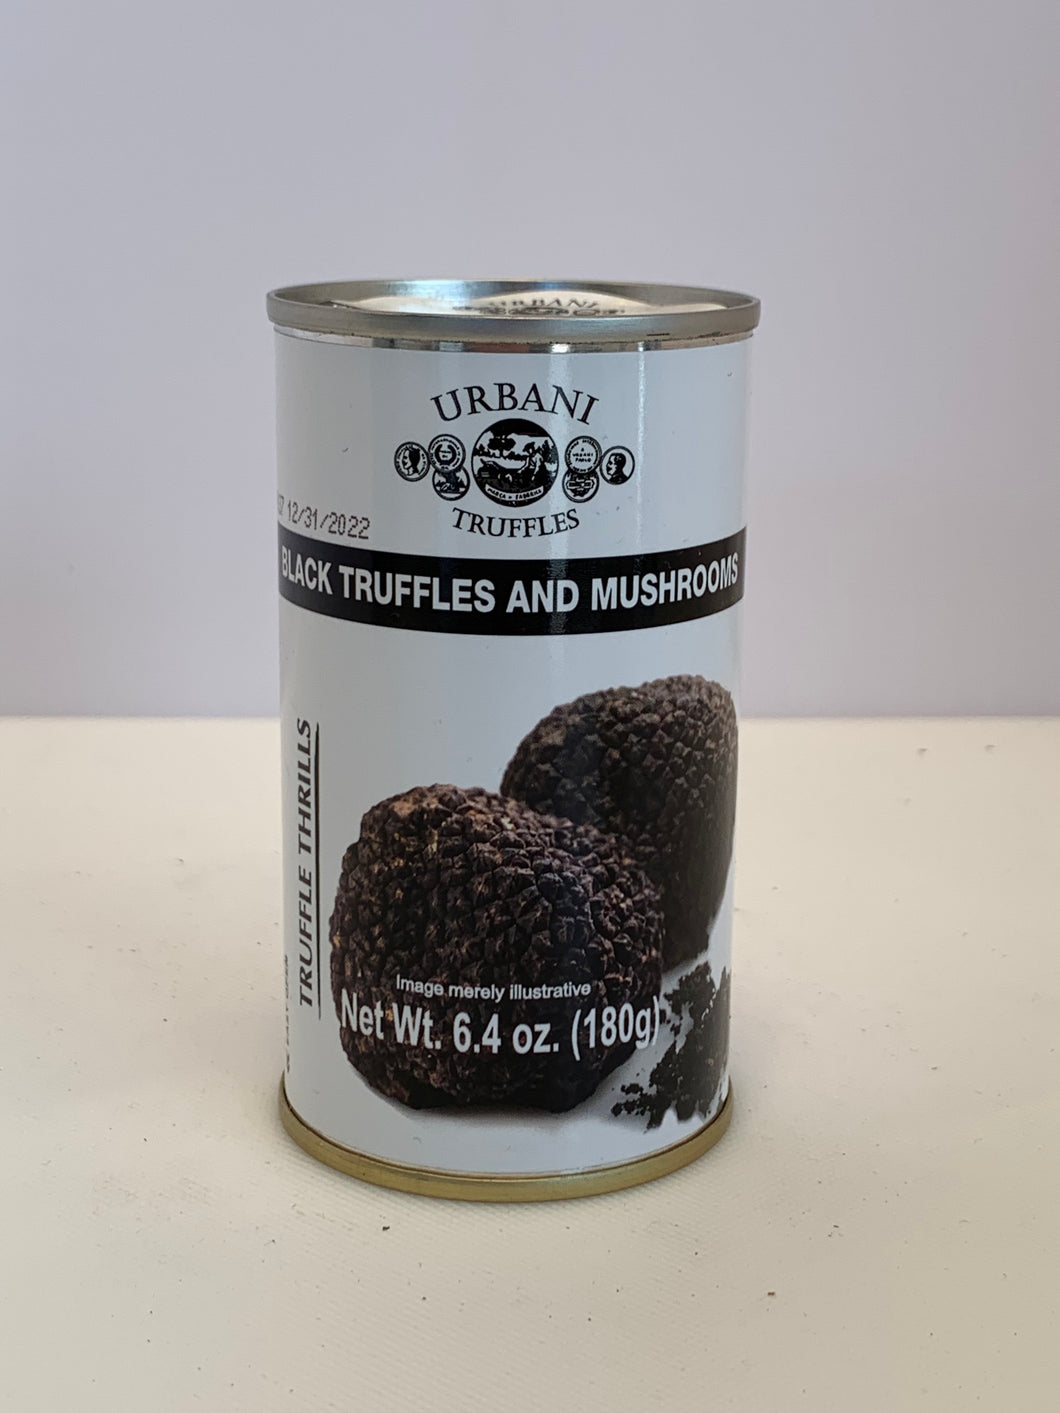 Urbani Black Truffle and Mushroom Paste